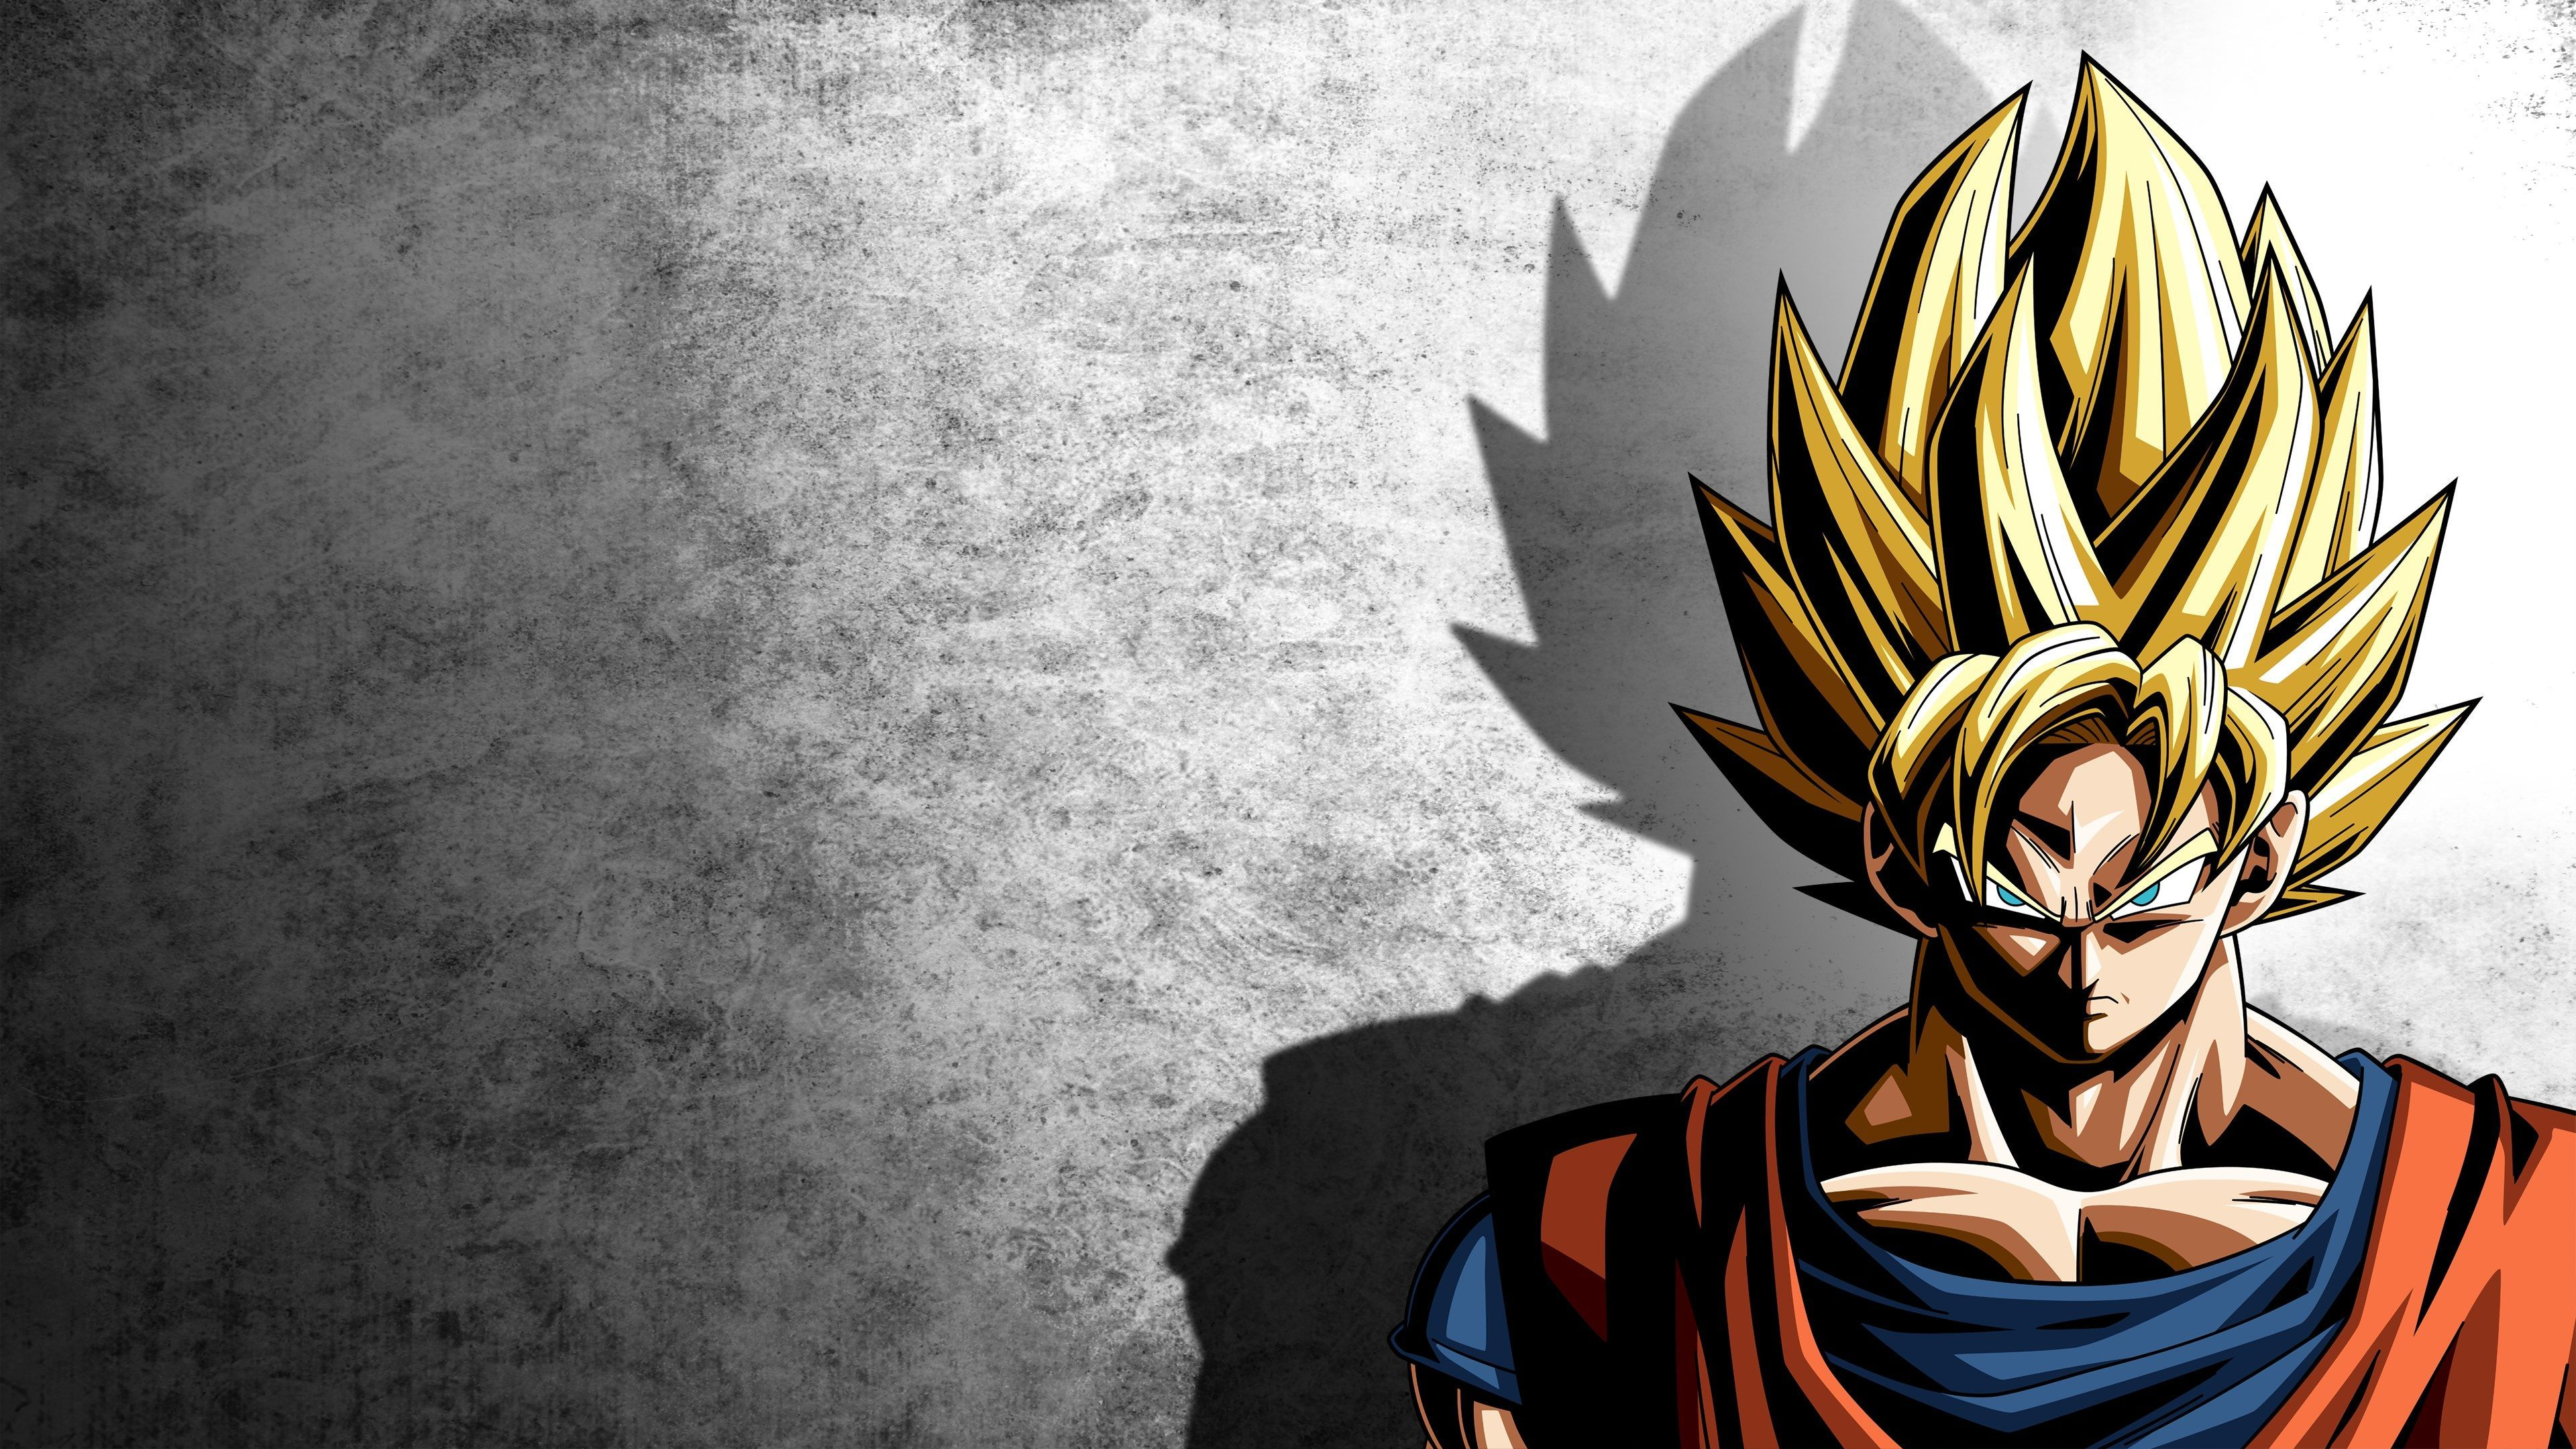 3840x2160 Dragon Ball Z 4k Wallpaper 3840x2160 Dragon Ball Dragons And Dragon Ball Wallpapers Goku Wallpaper Dragon Ball Super Wallpapers